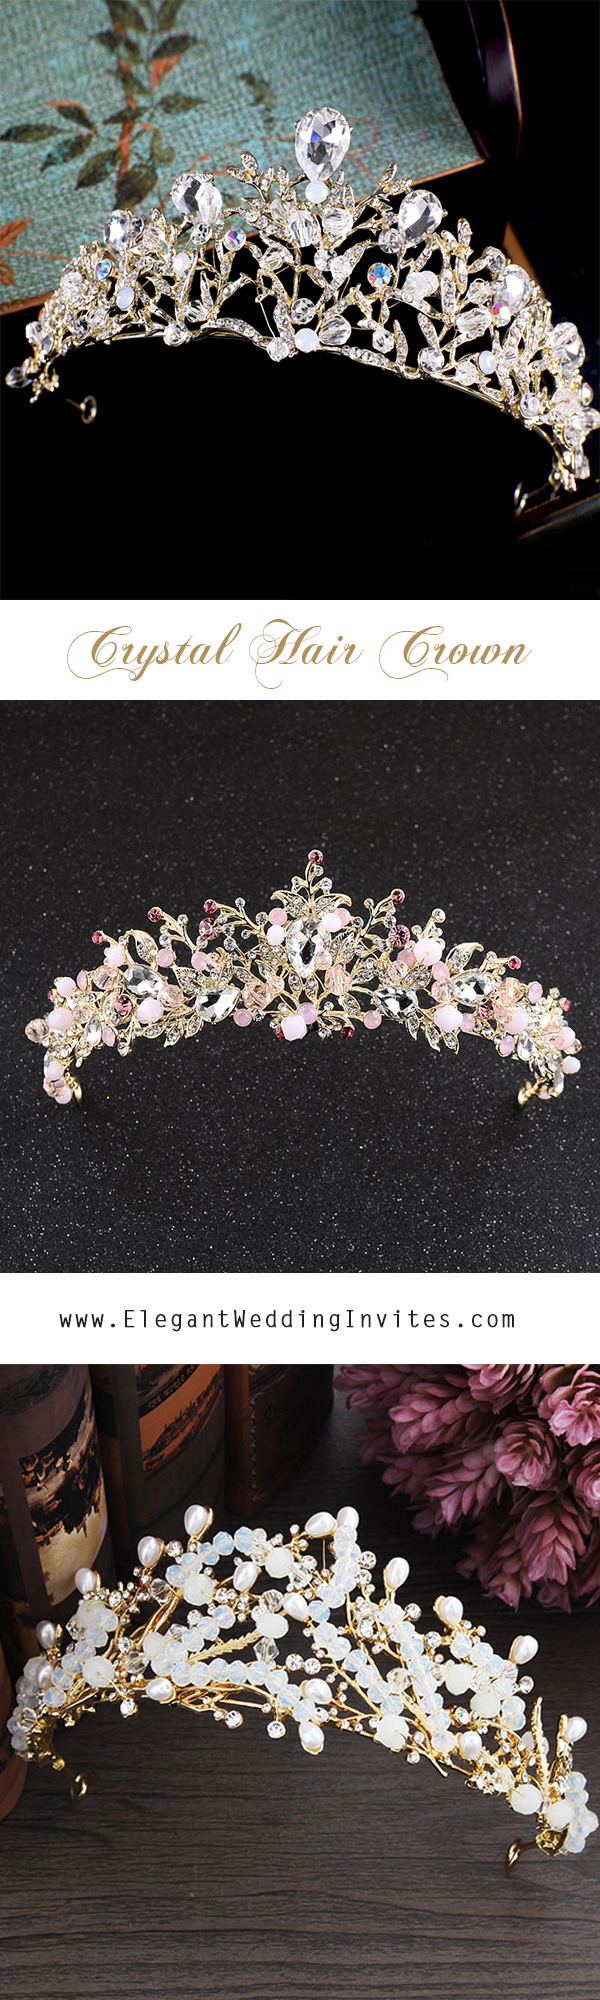 EWI Bridal Hair Accessories Crystal Hair Crowns